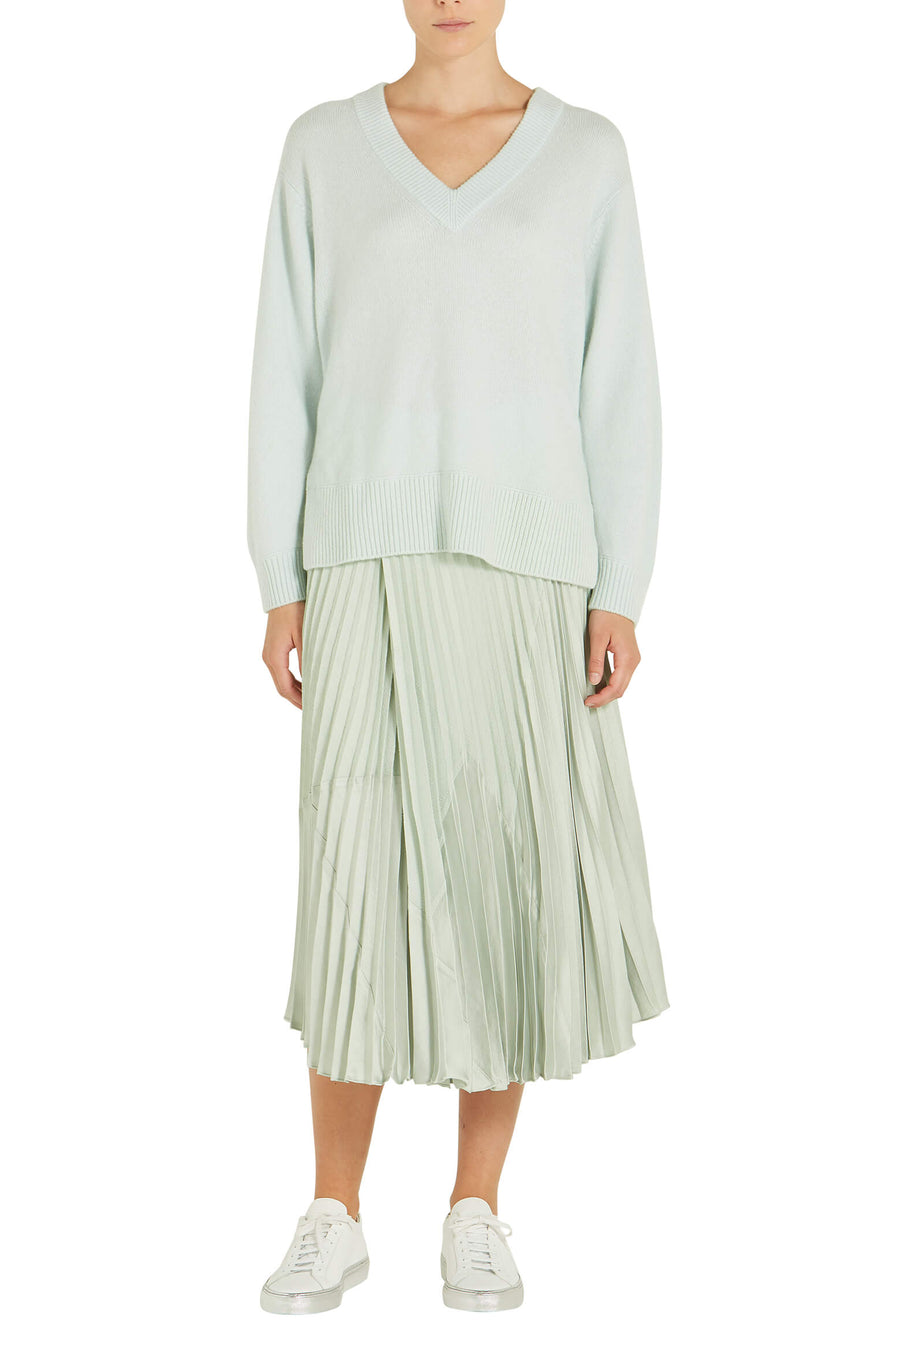 Vince V Neck Tunic in Aloe from The New Trend